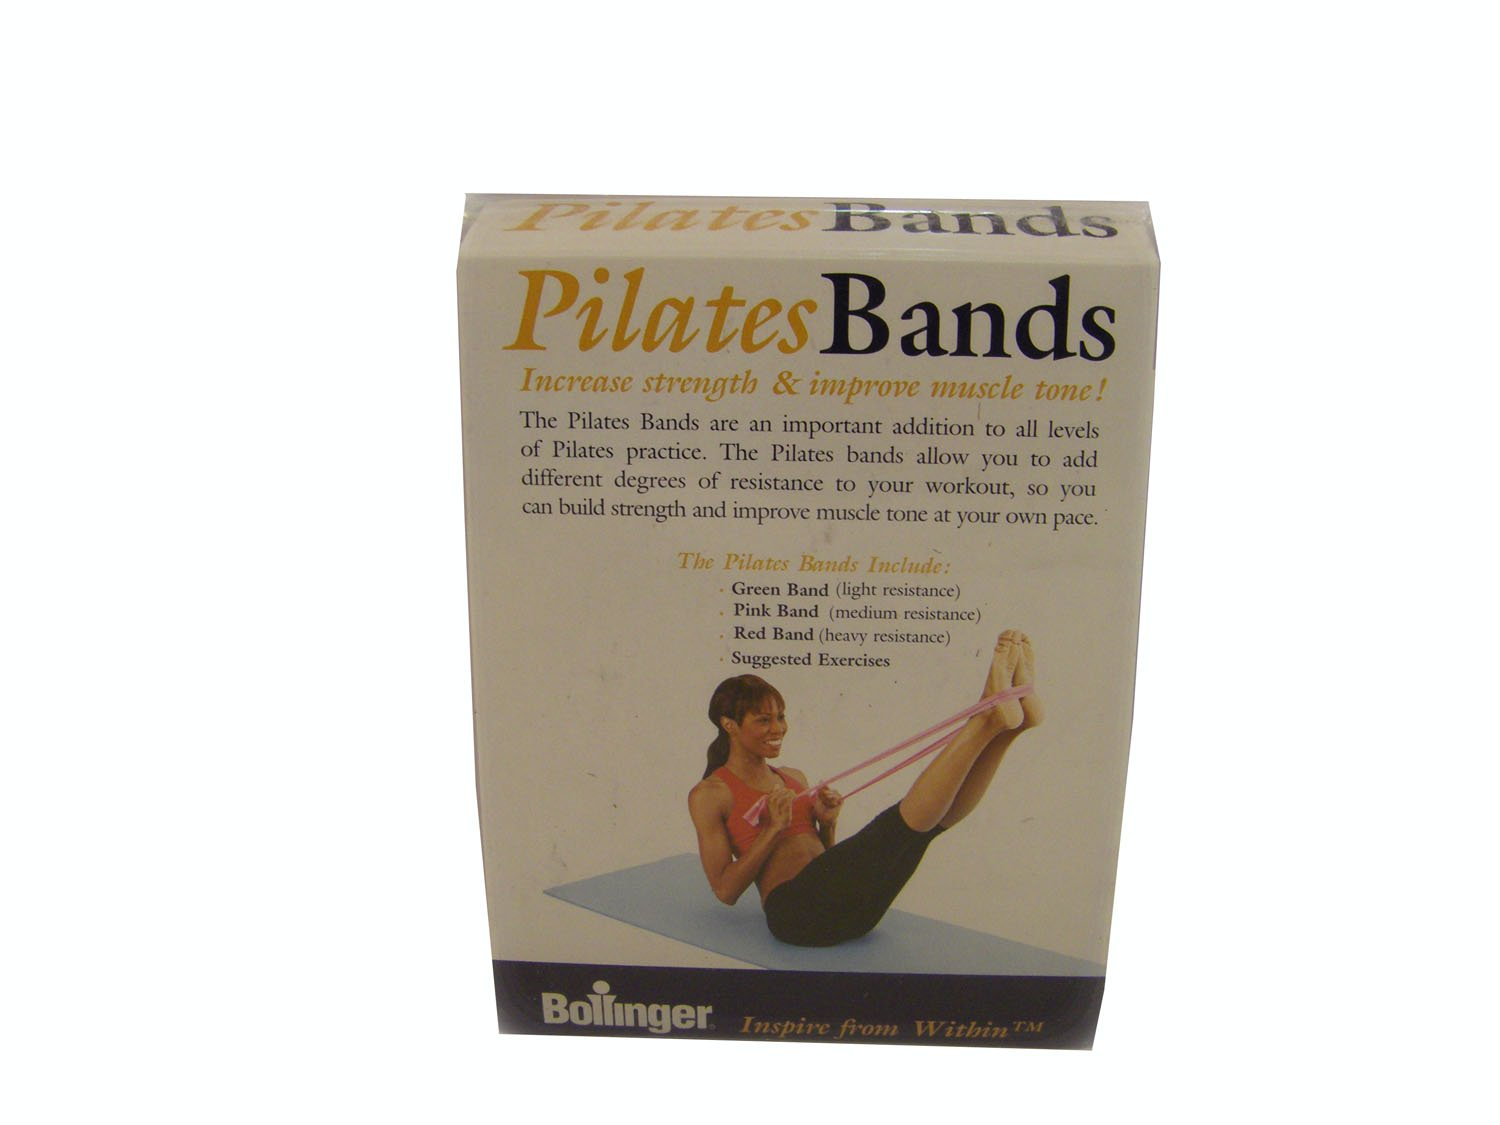 Pilates Bands by Bollinger